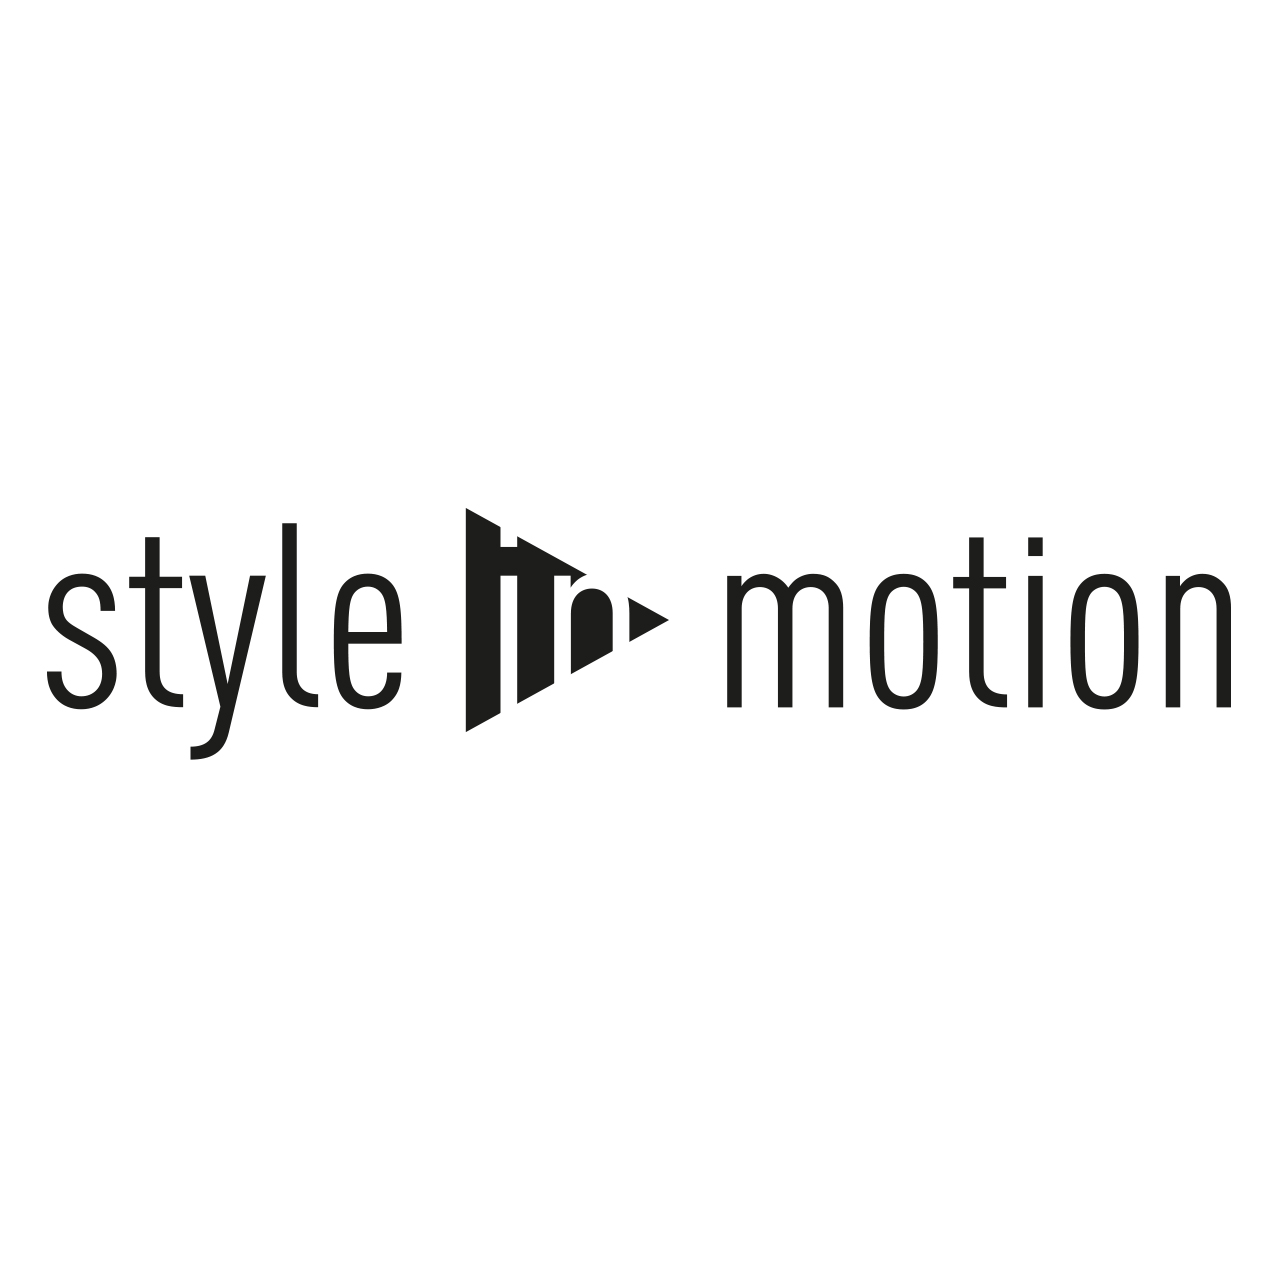 style_in_motion_logo